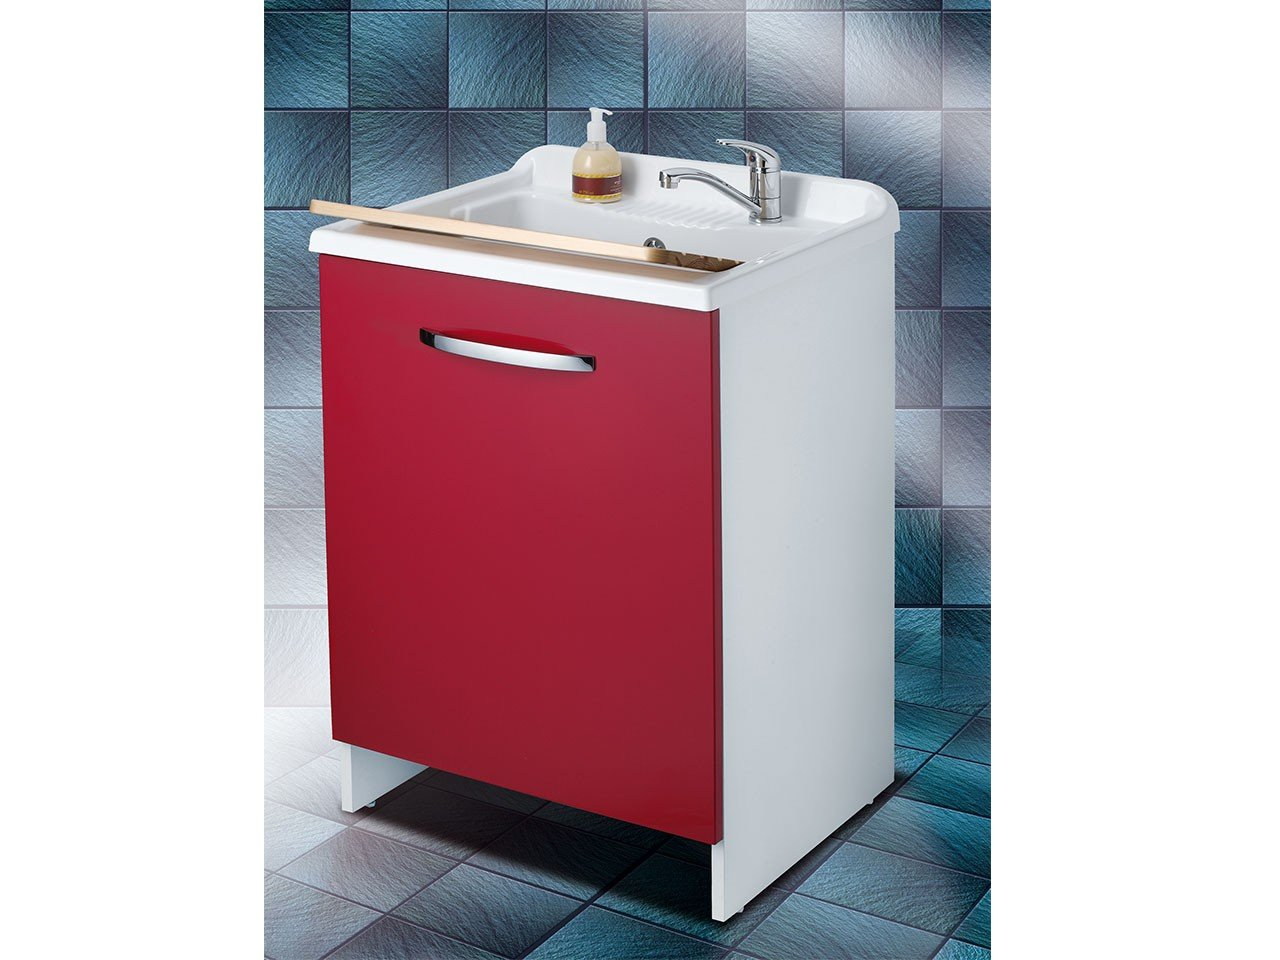 Best Laundry Tub : \ Laundry Sink Furniture \ Laundry Sink Furniture - Top Color \ TOP ...